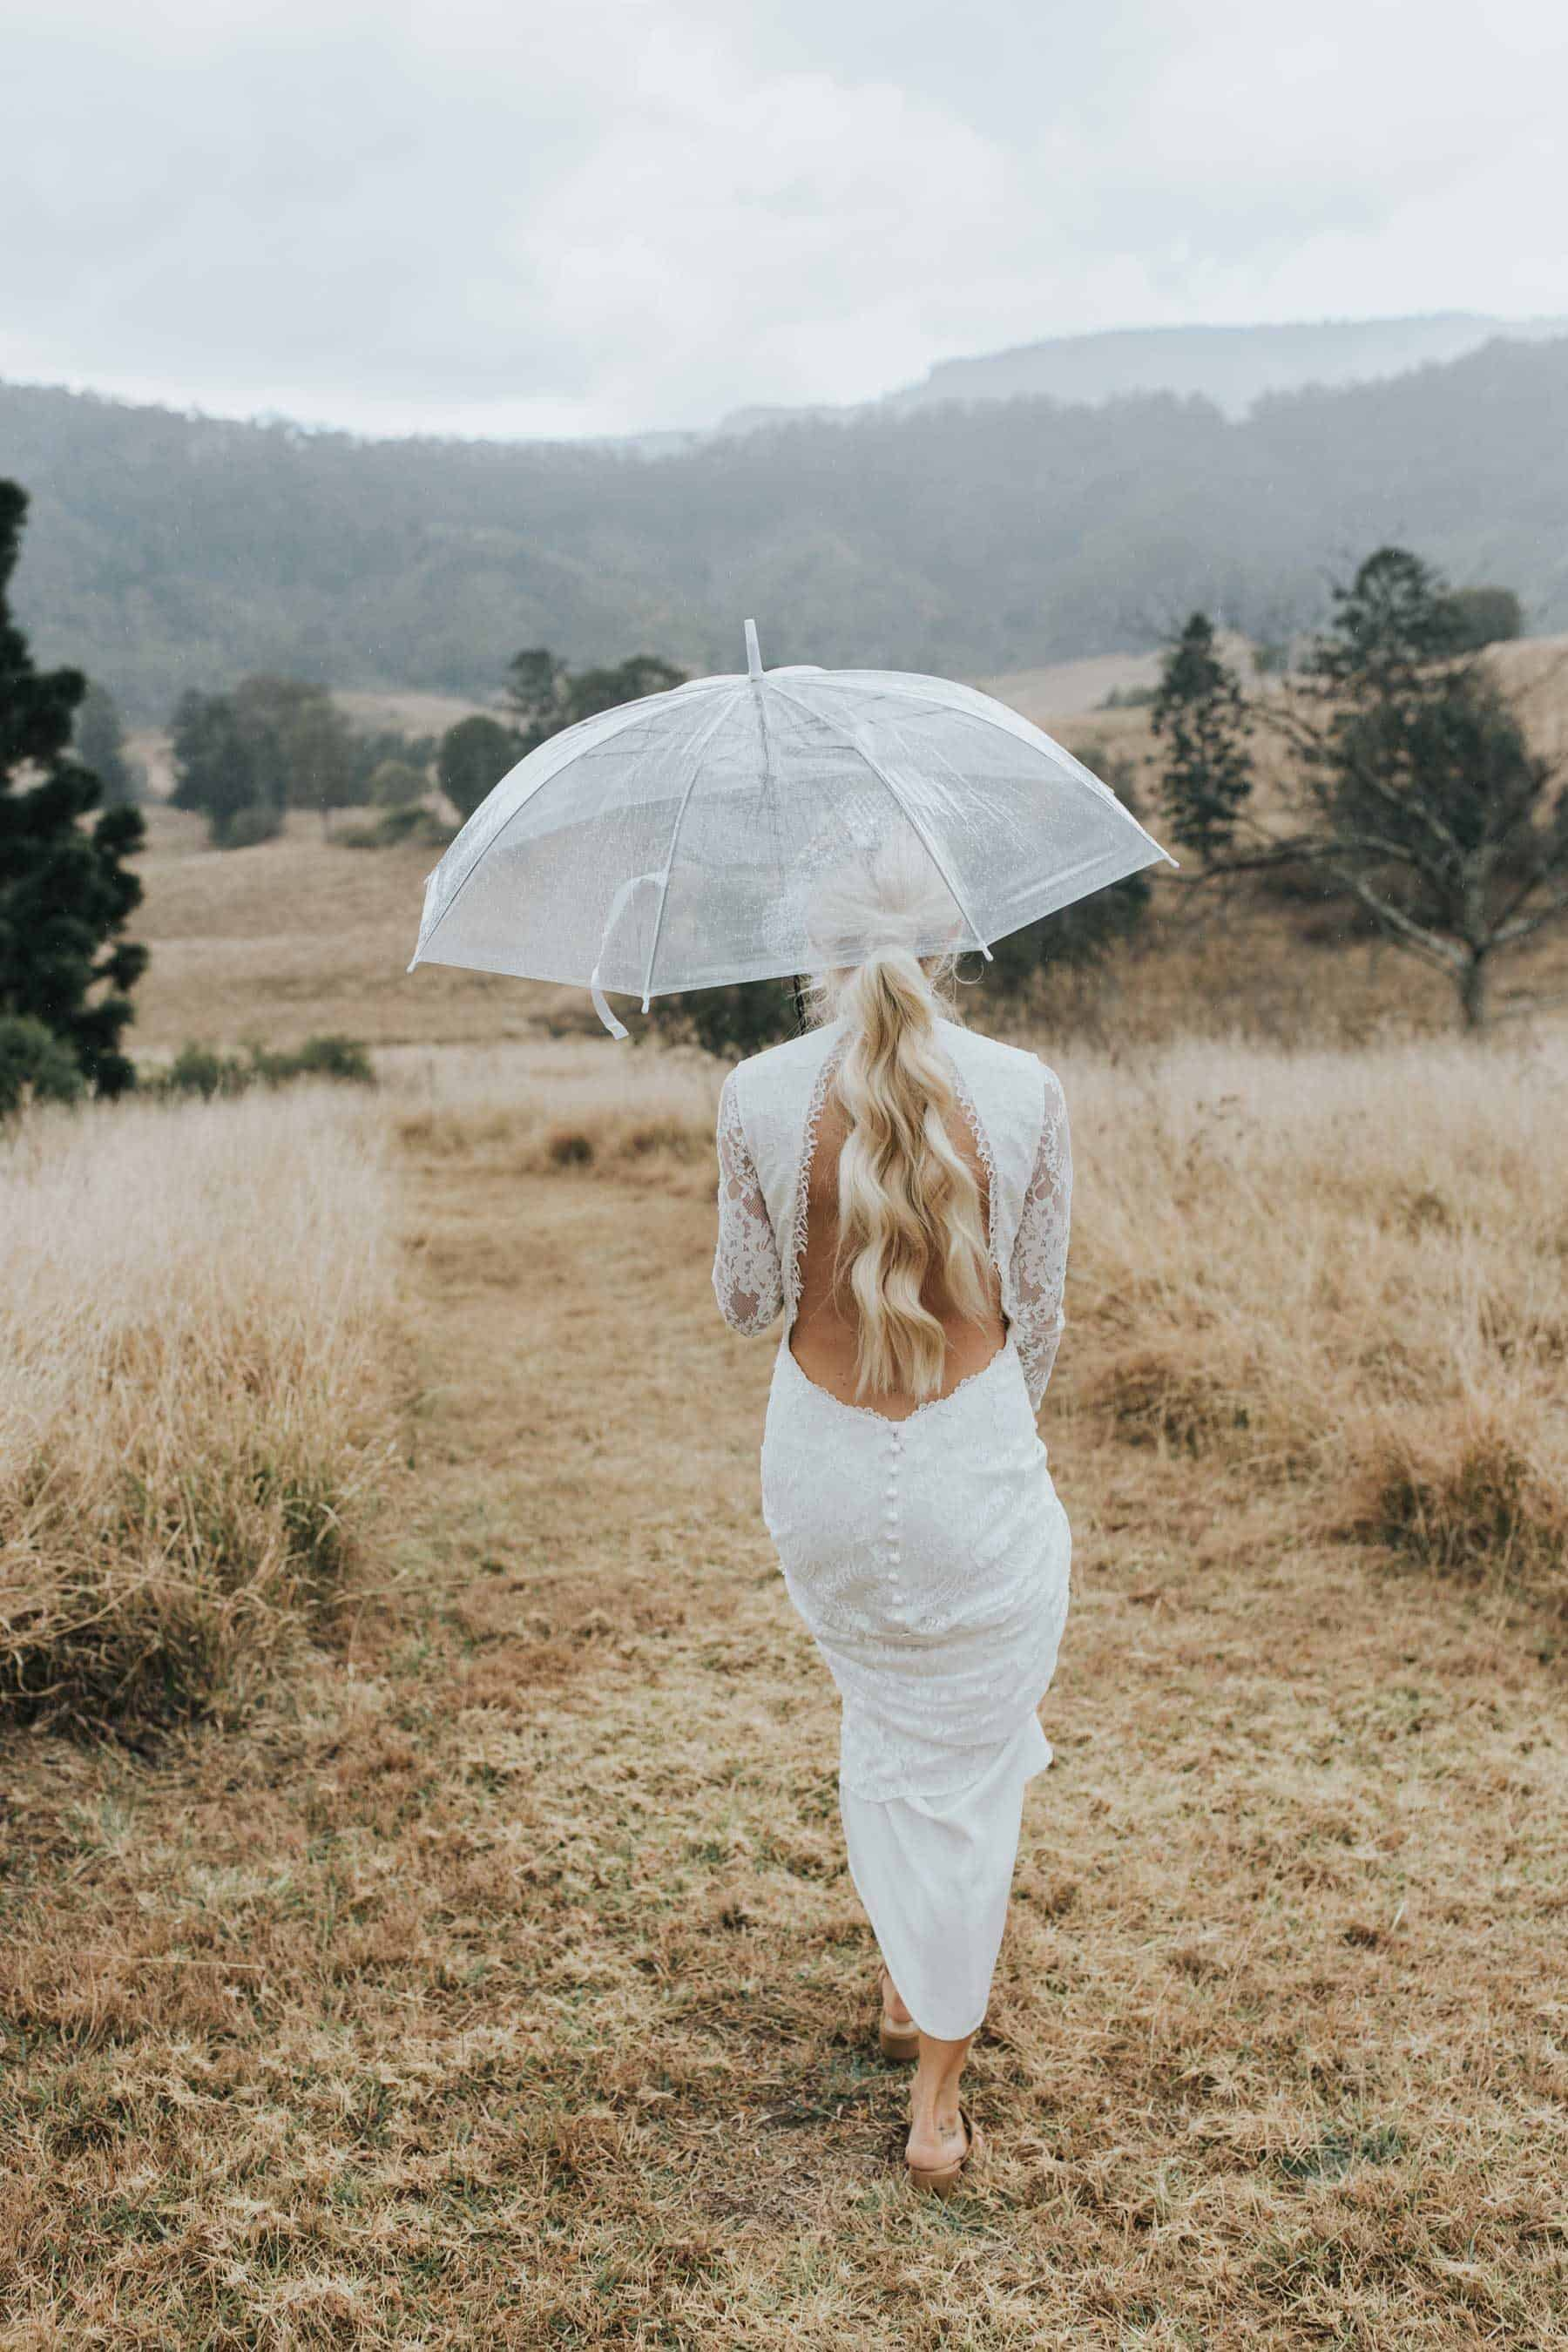 Best wedding dresses of 2019 - high neck backless lace gown by Claire Pettibone